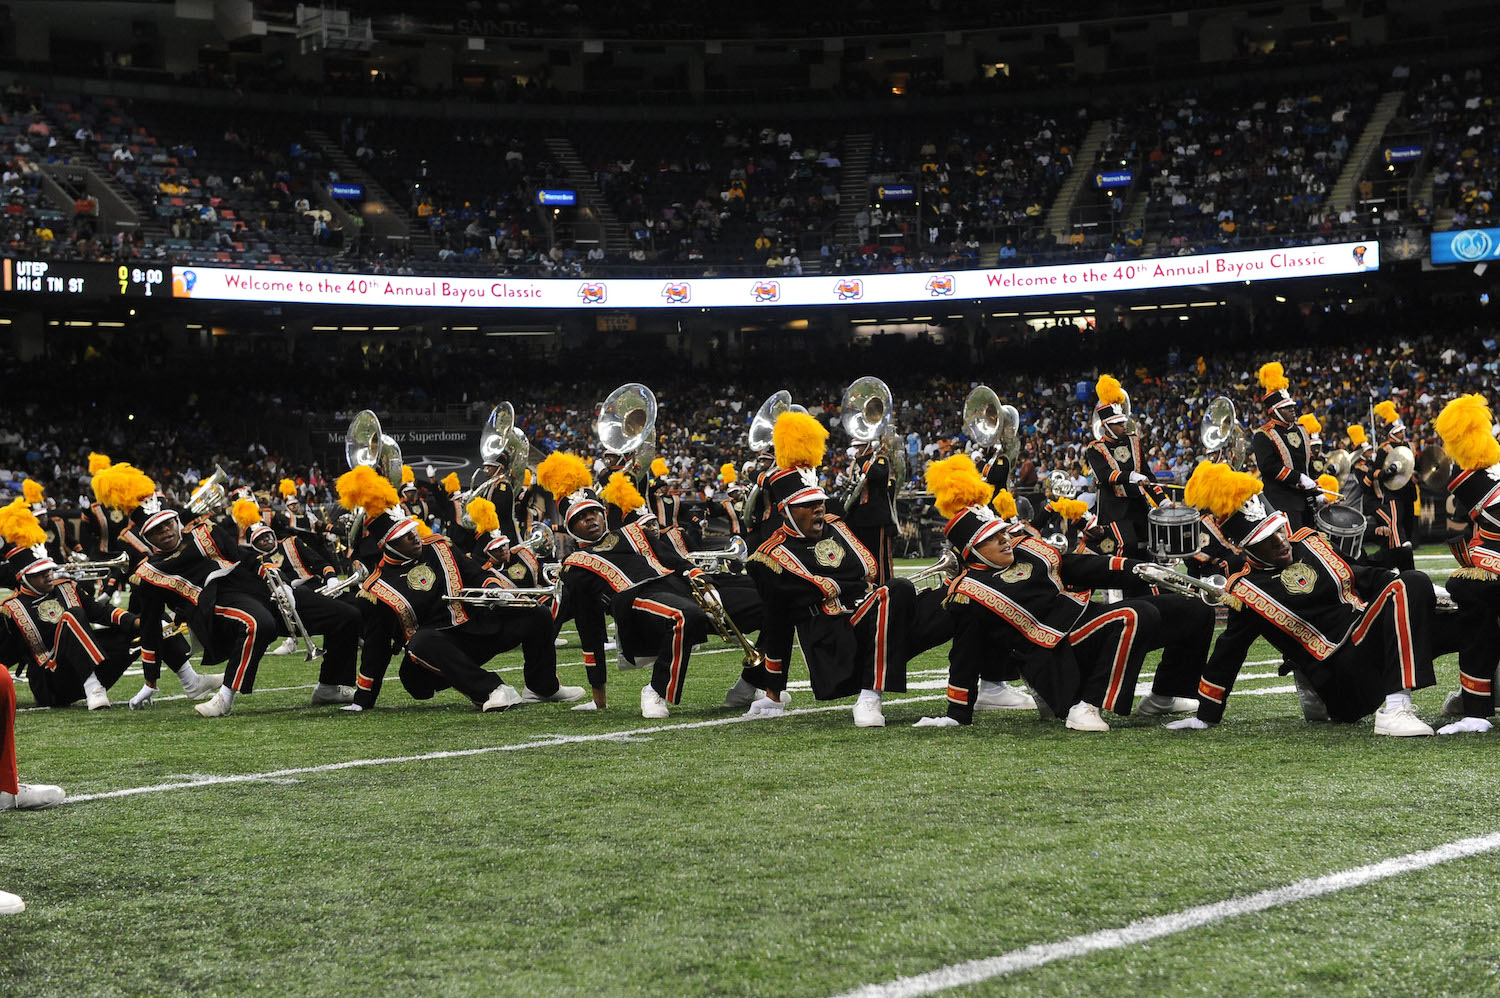 What To Expect At The 2018 Bayou Classic In New Orleans